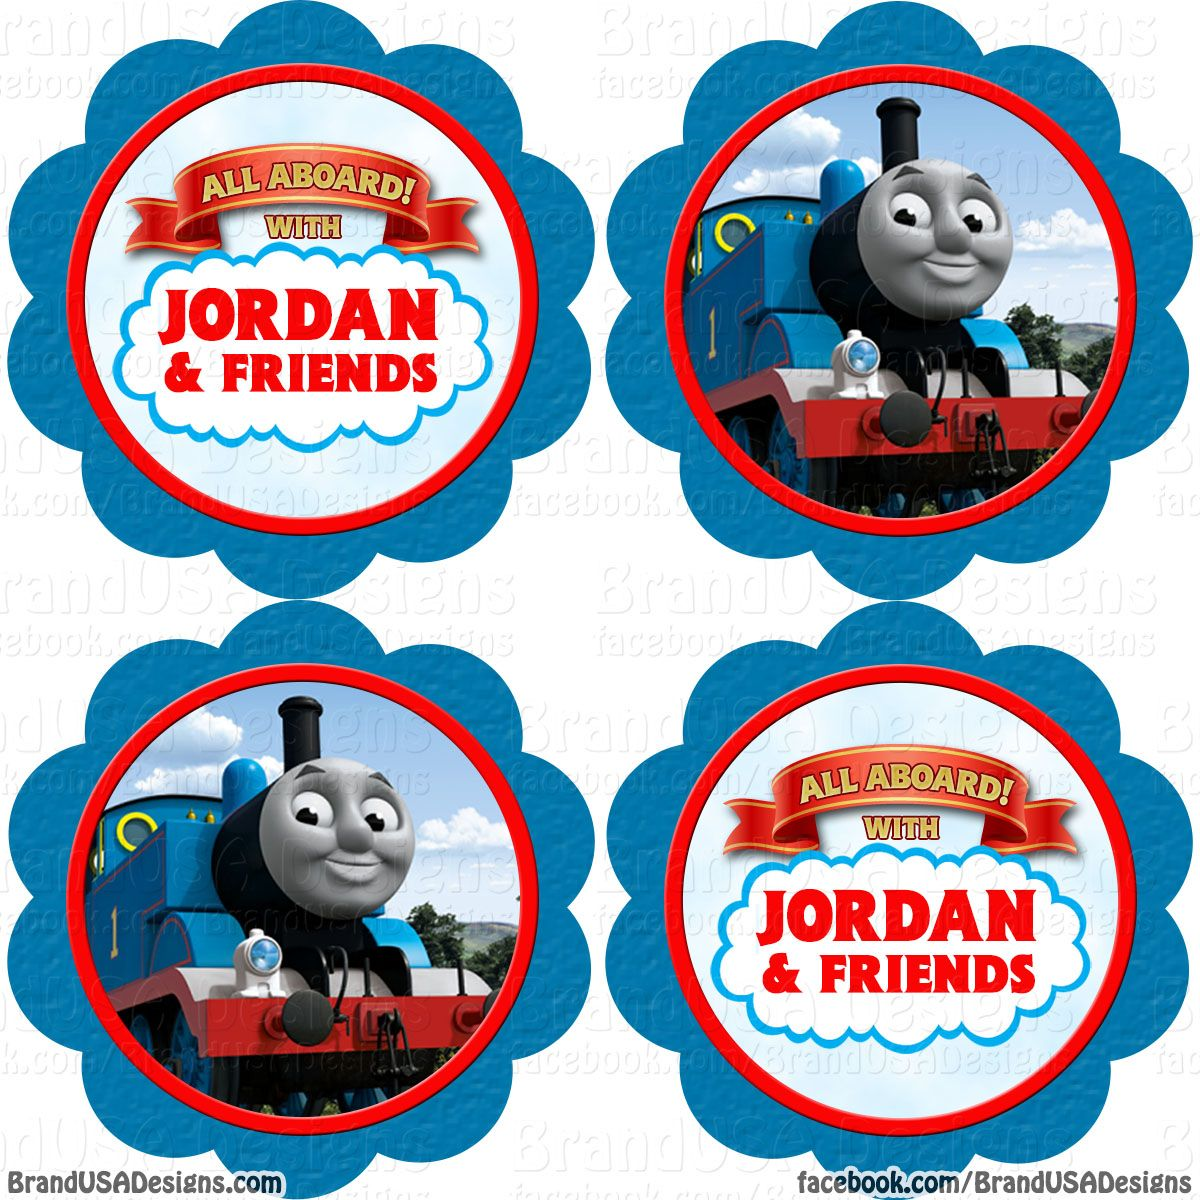 picture regarding Free Printable Thomas the Train Cup Cake Toppers referred to as free of charge printable thomas the educate cup cake toppers - Google